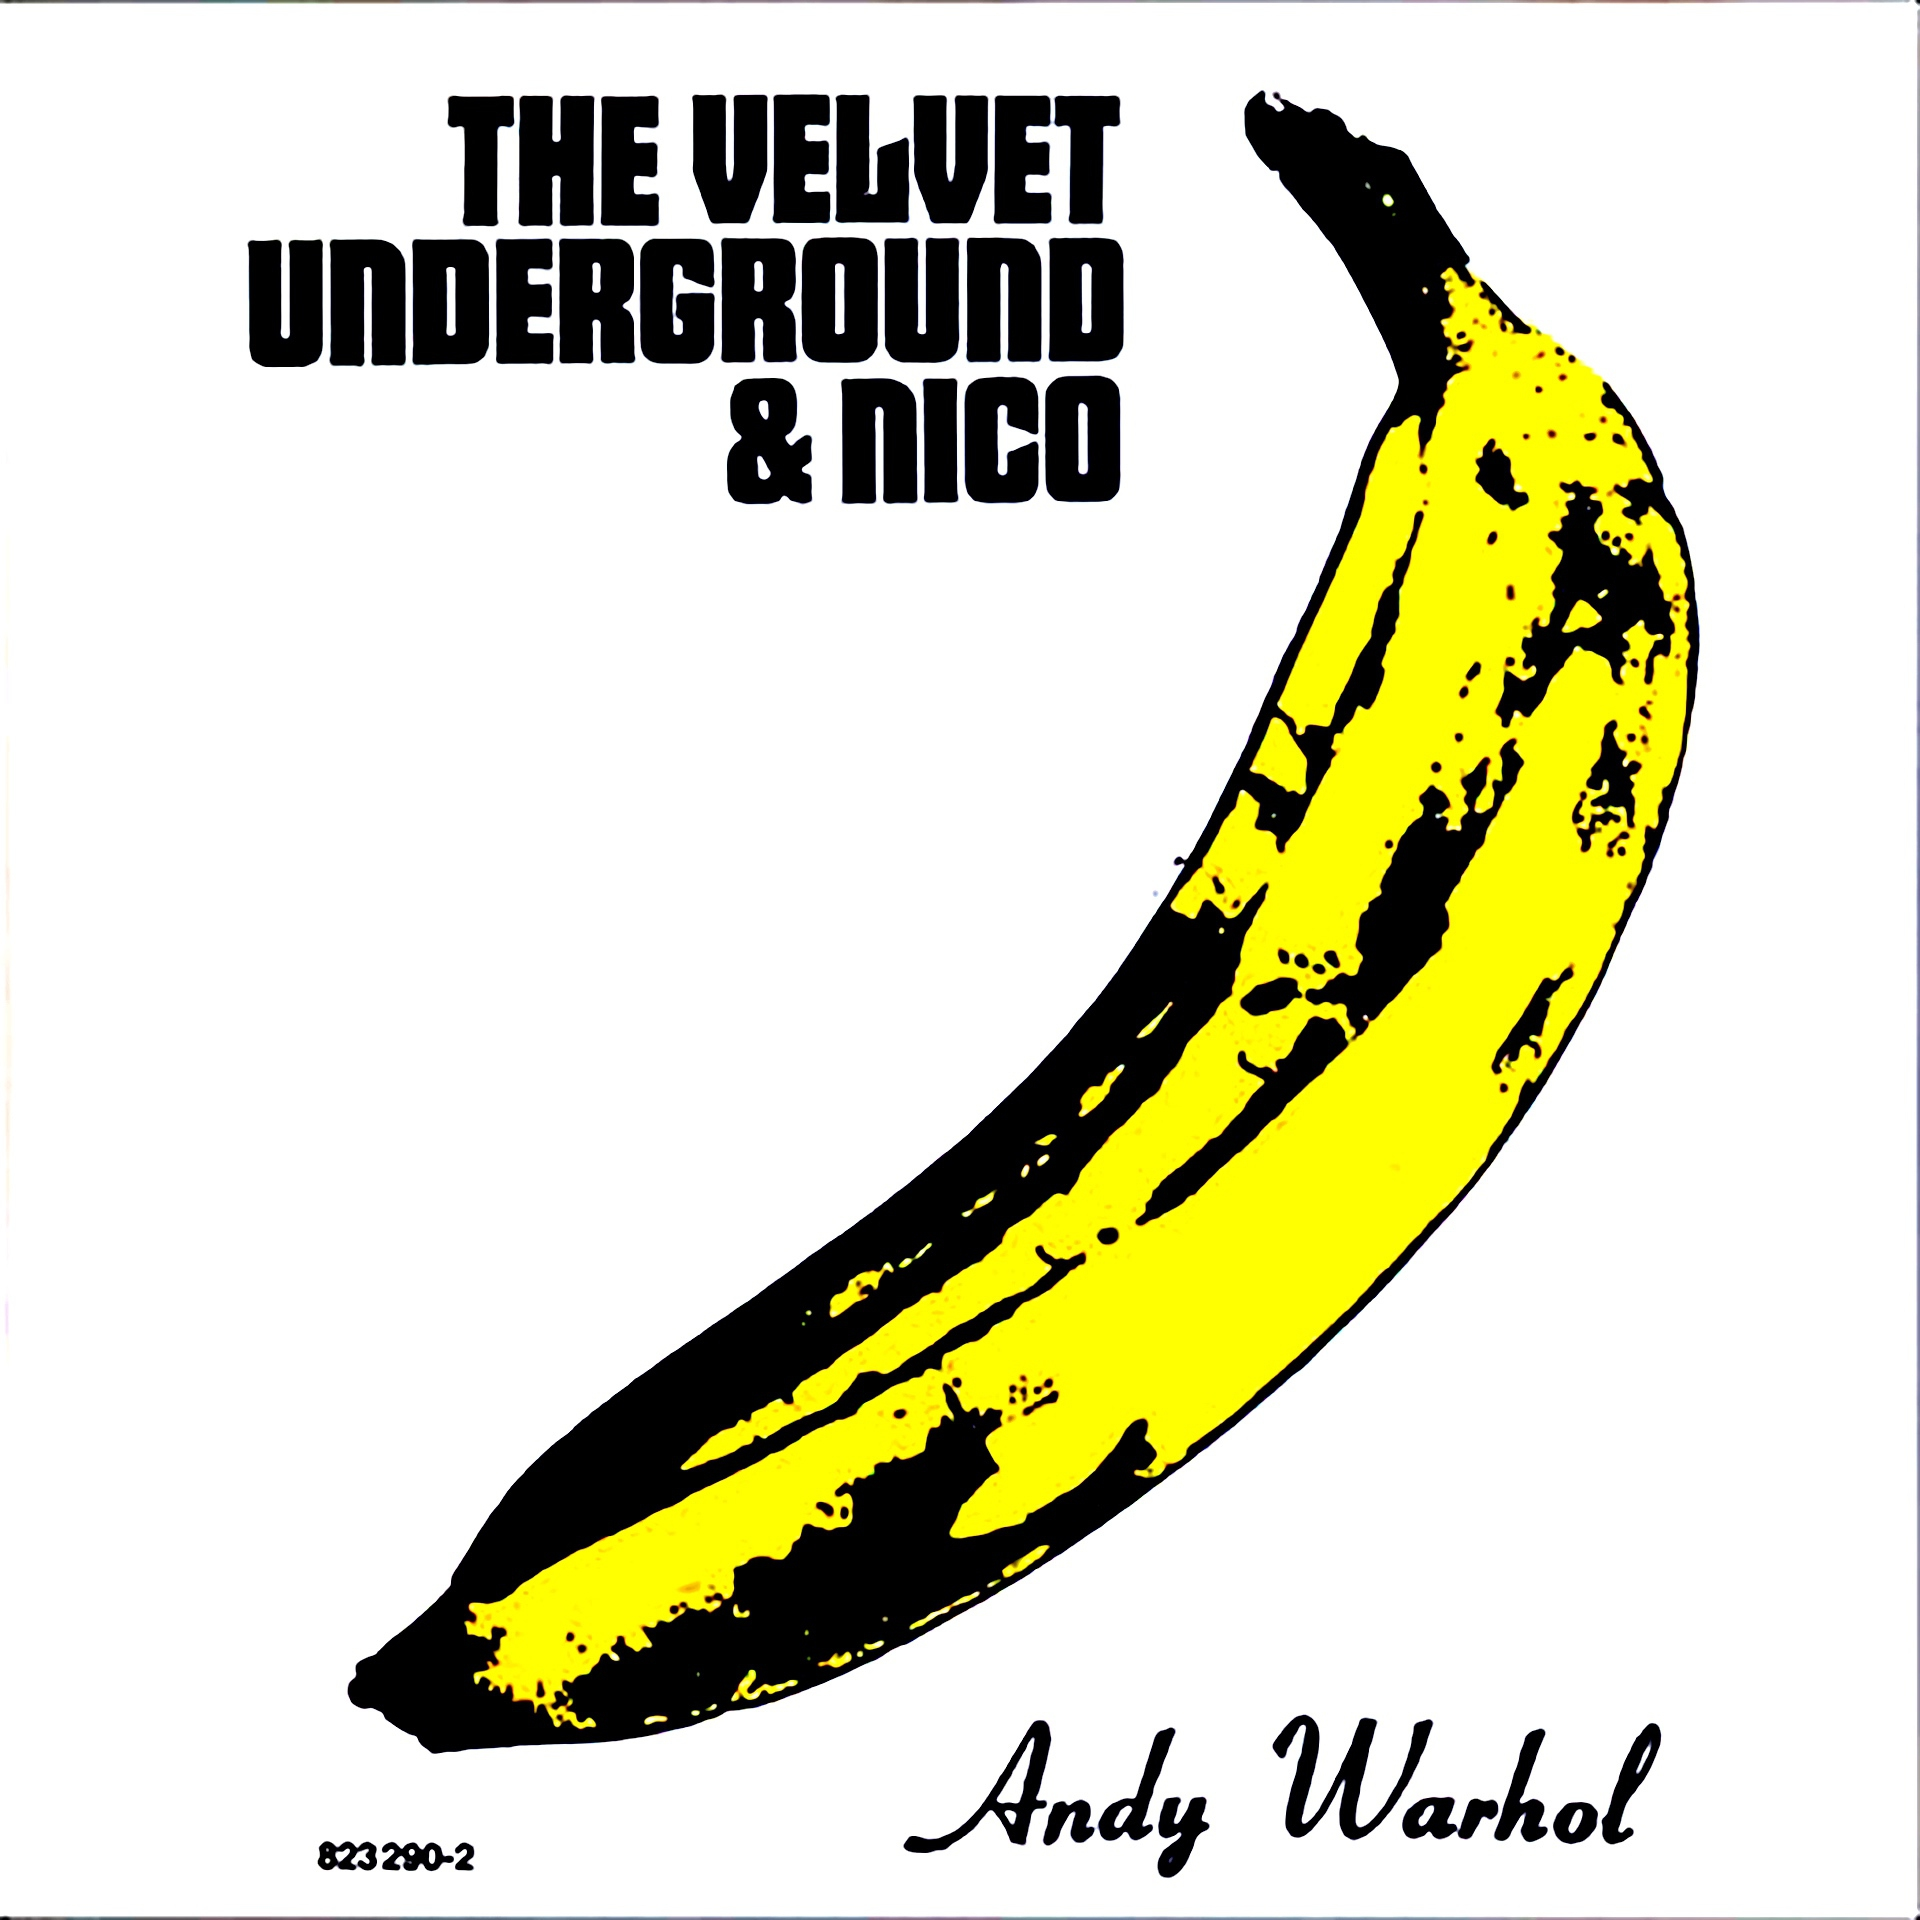 The Velvet Underground & Nico cover (1967) by Andy Warhol - Pako Campo